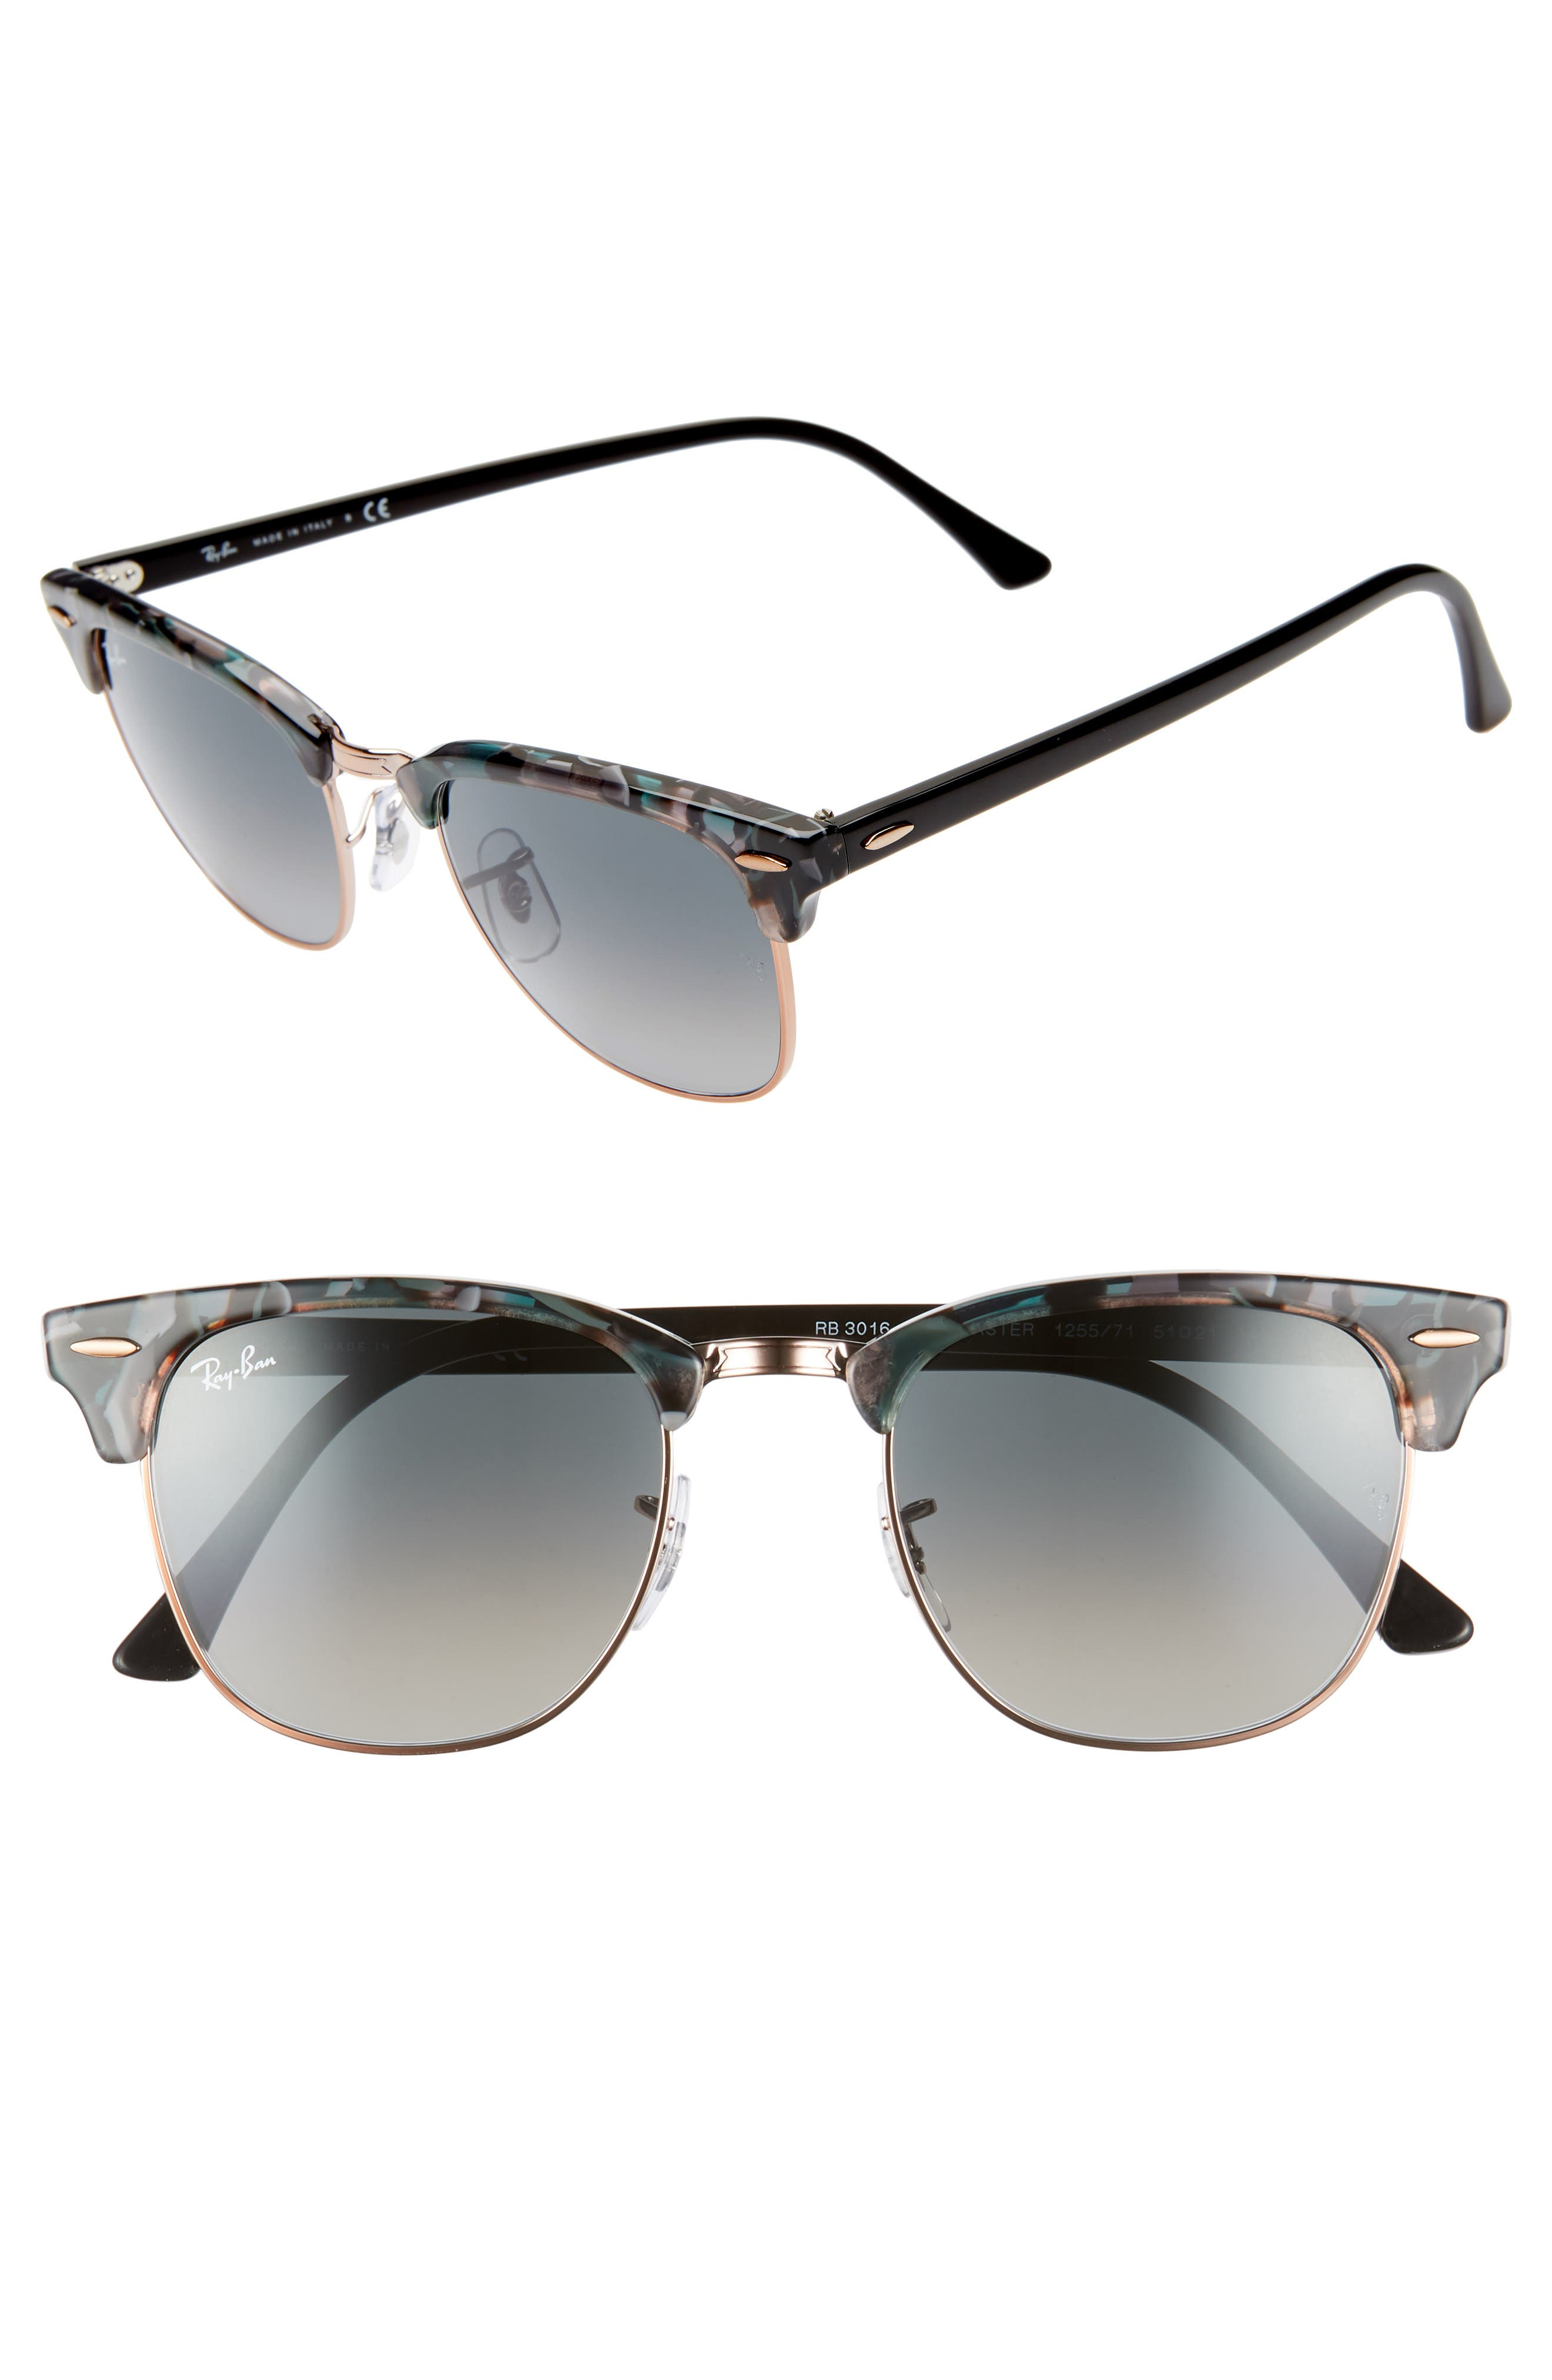 RAY-BAN, Clubmaster 51mm Gradient Sunglasses, Main thumbnail 1, color, GREY/ GREEN GRADIENT